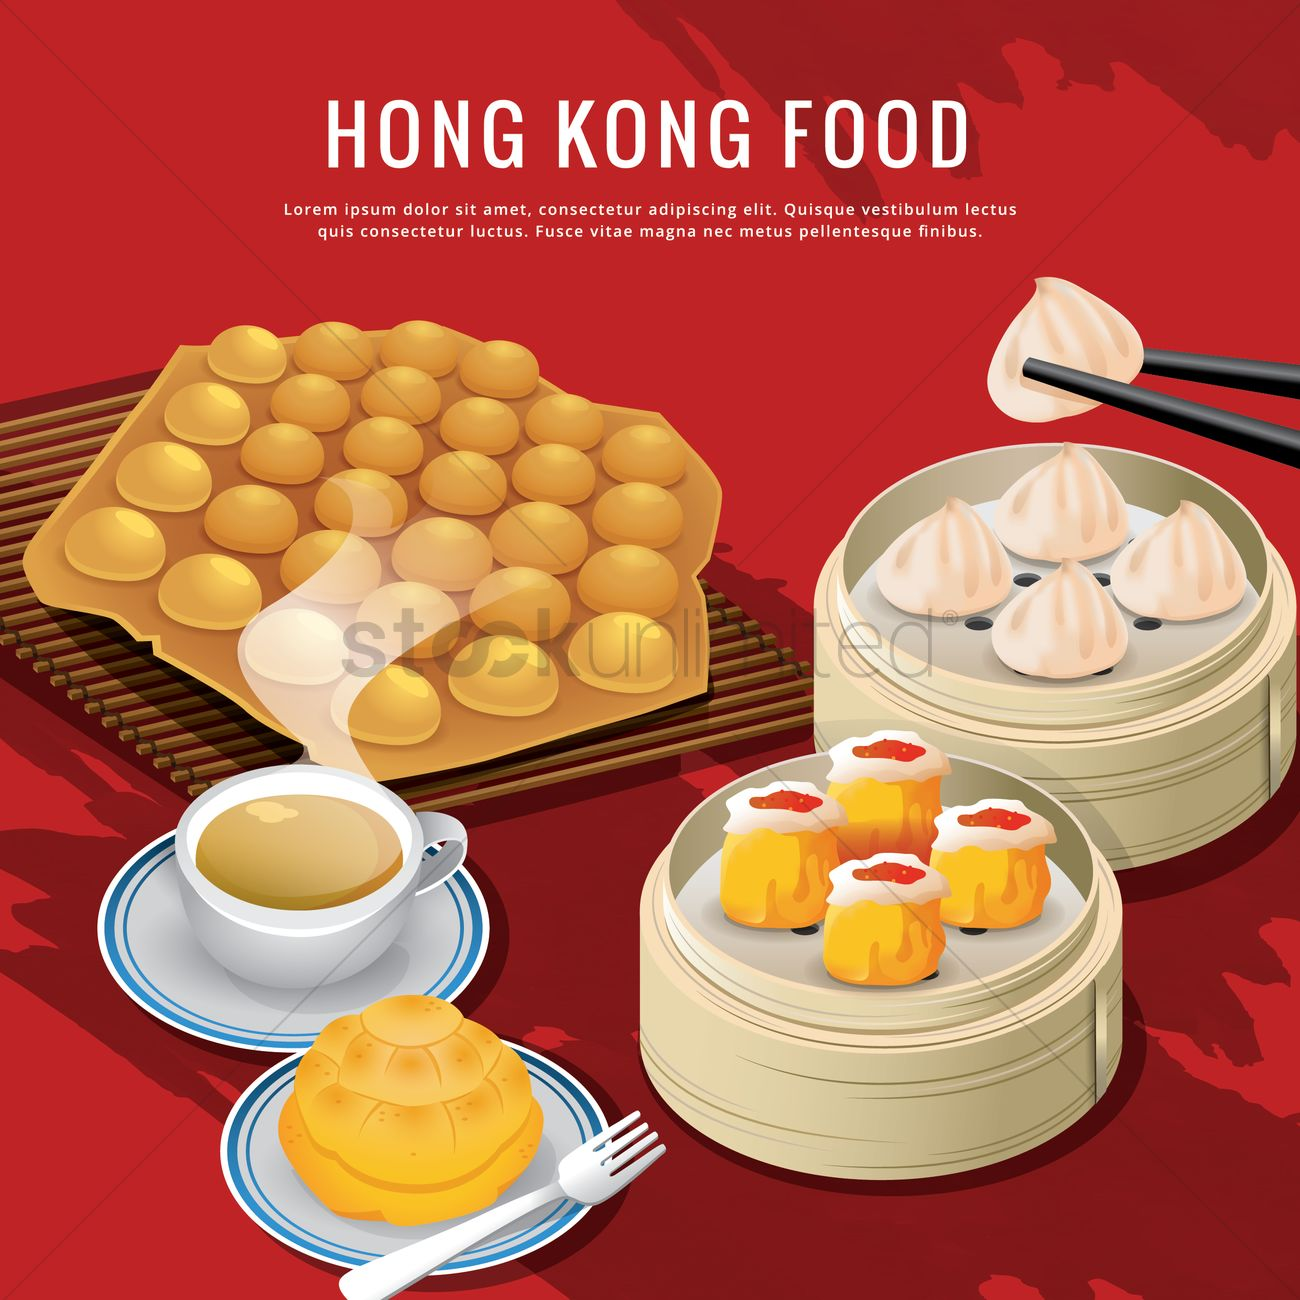 Hong kong food vector image 1594434 stockunlimited for Cuisine x hong kong